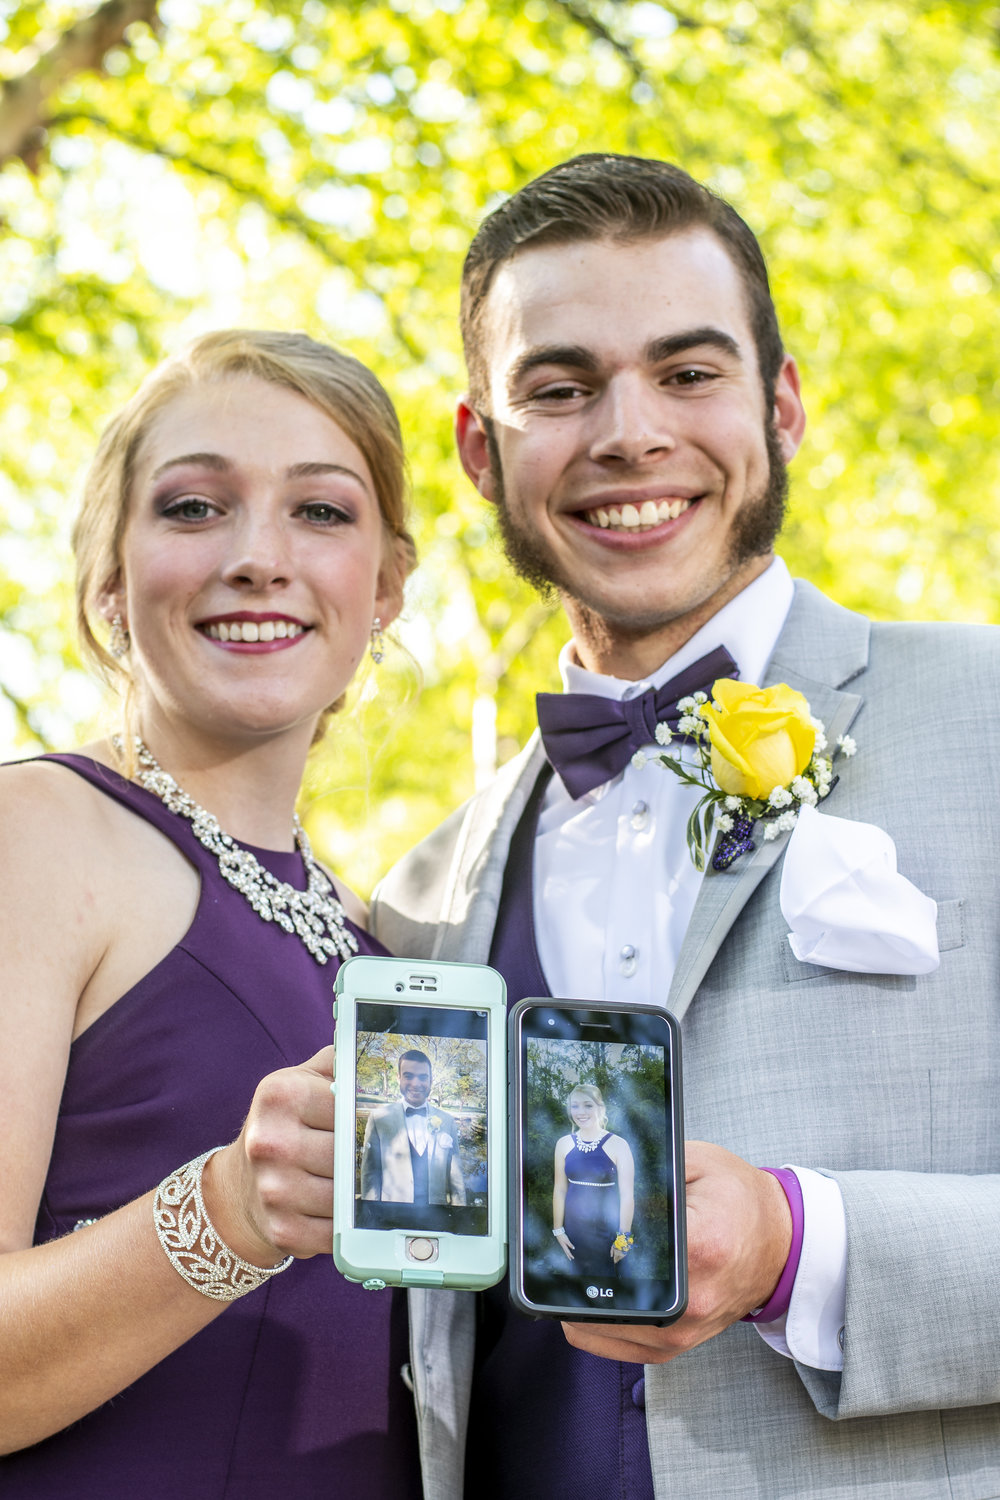 ethan-and-ally-prom-111-of-113_28061306718_o.jpg